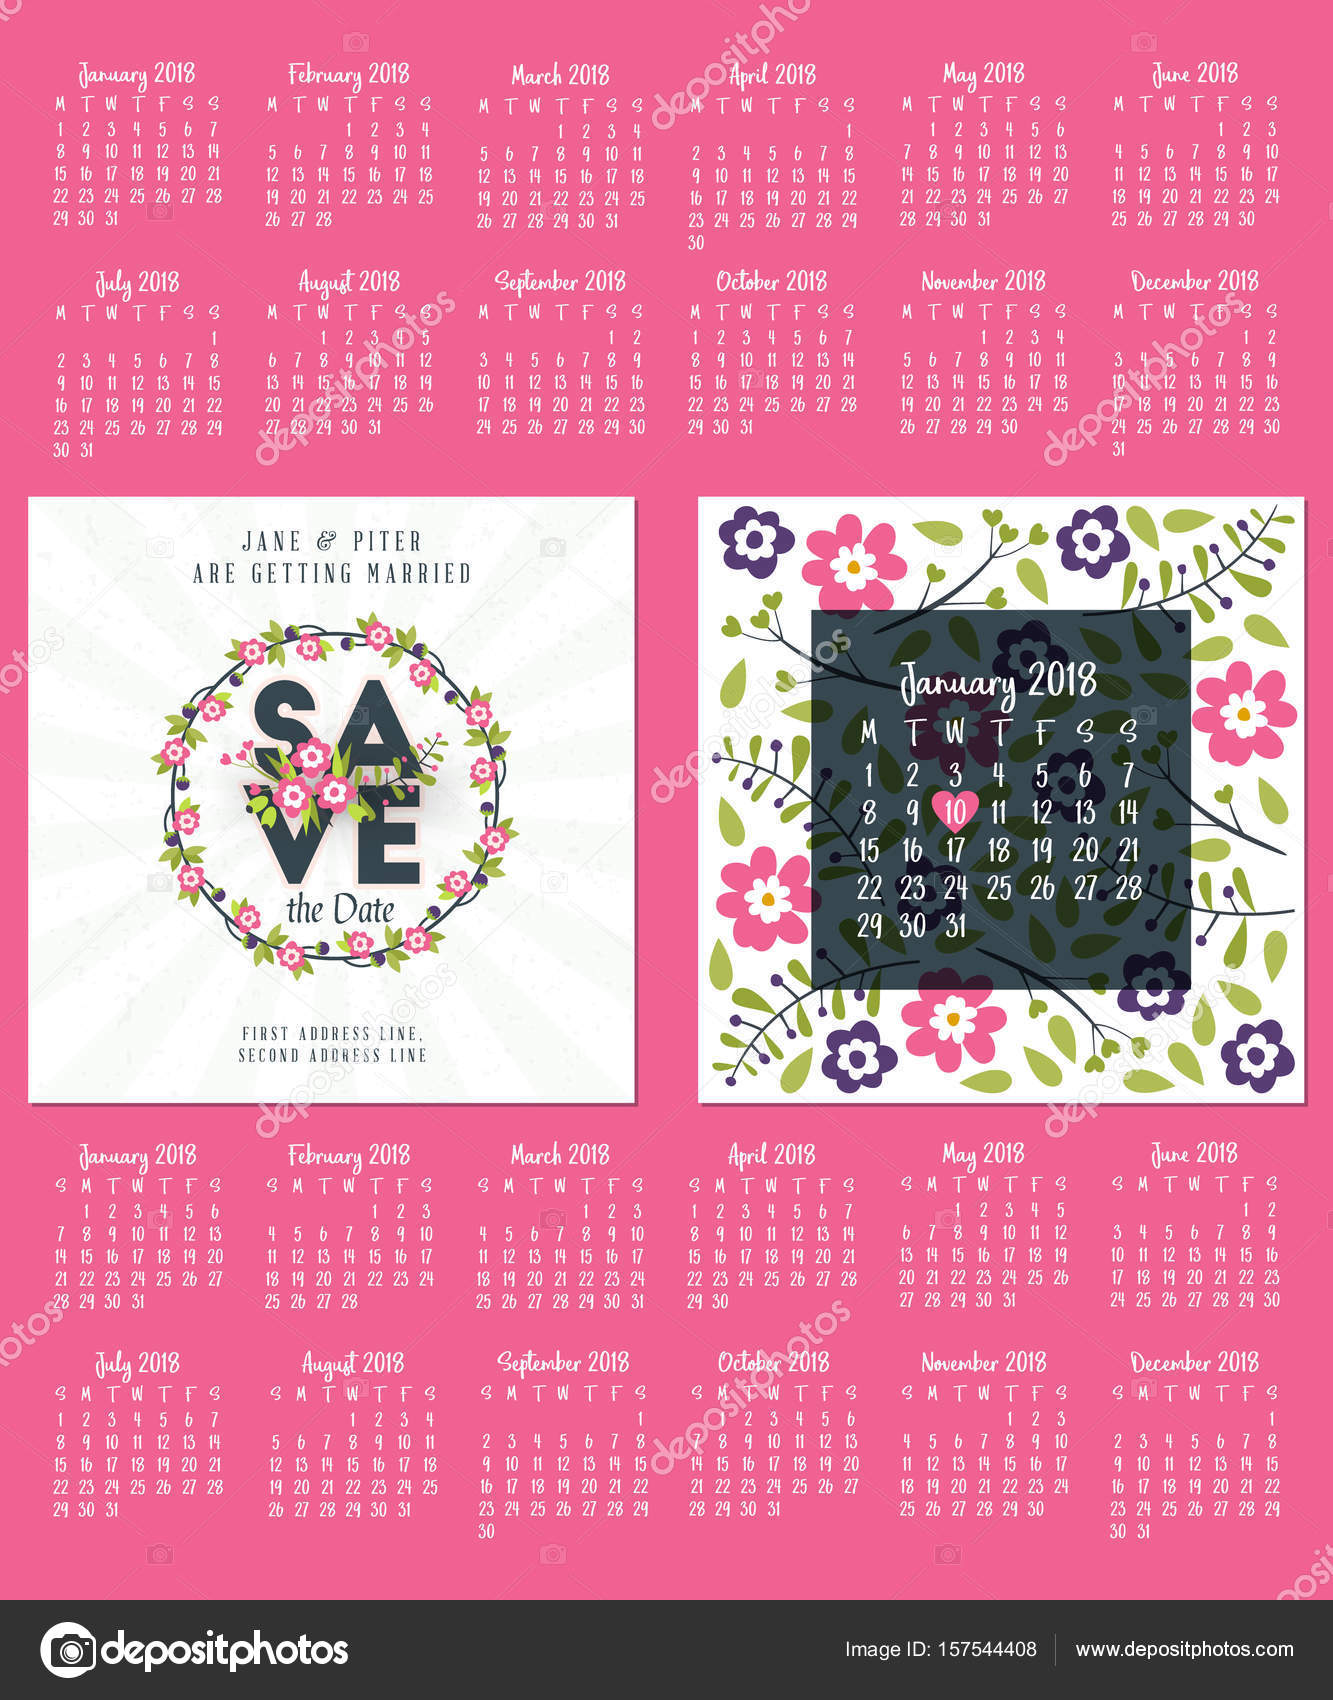 Save The Date Wedding Invitation Double Sided Card Design Template